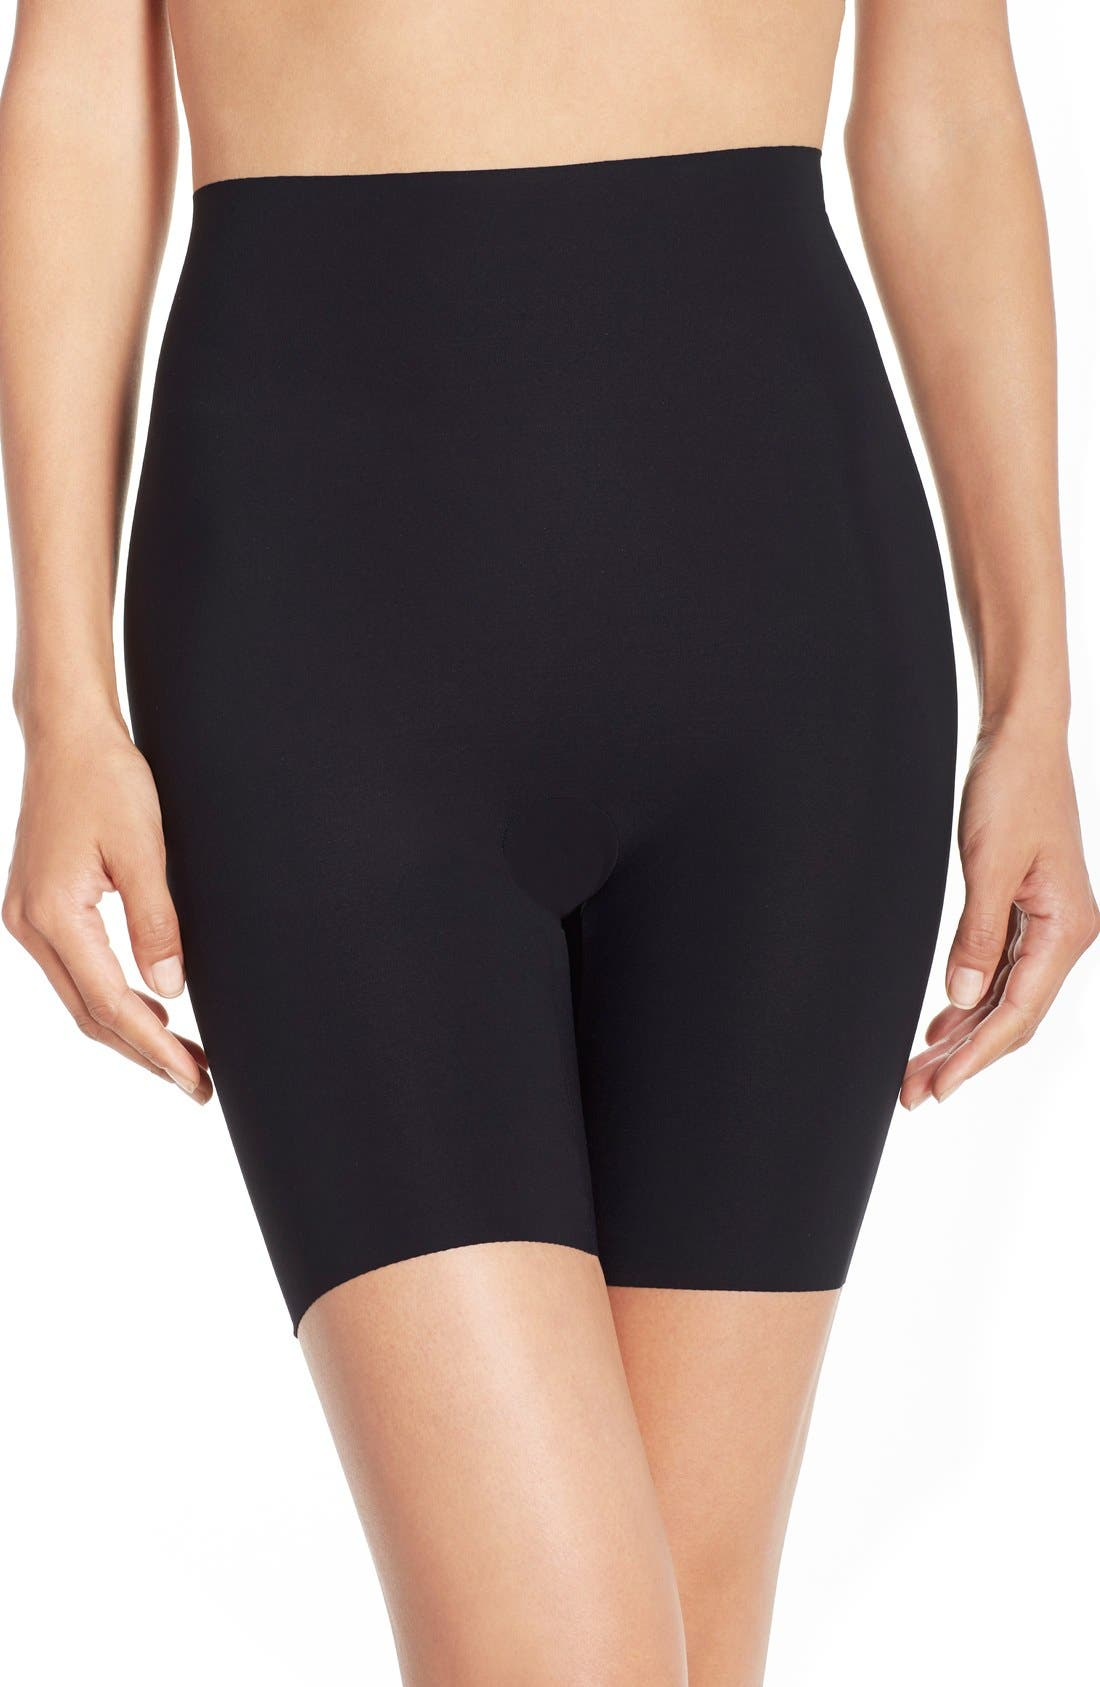 'Control' High Waist Shaping Shorts,                         Main,                         color, Black